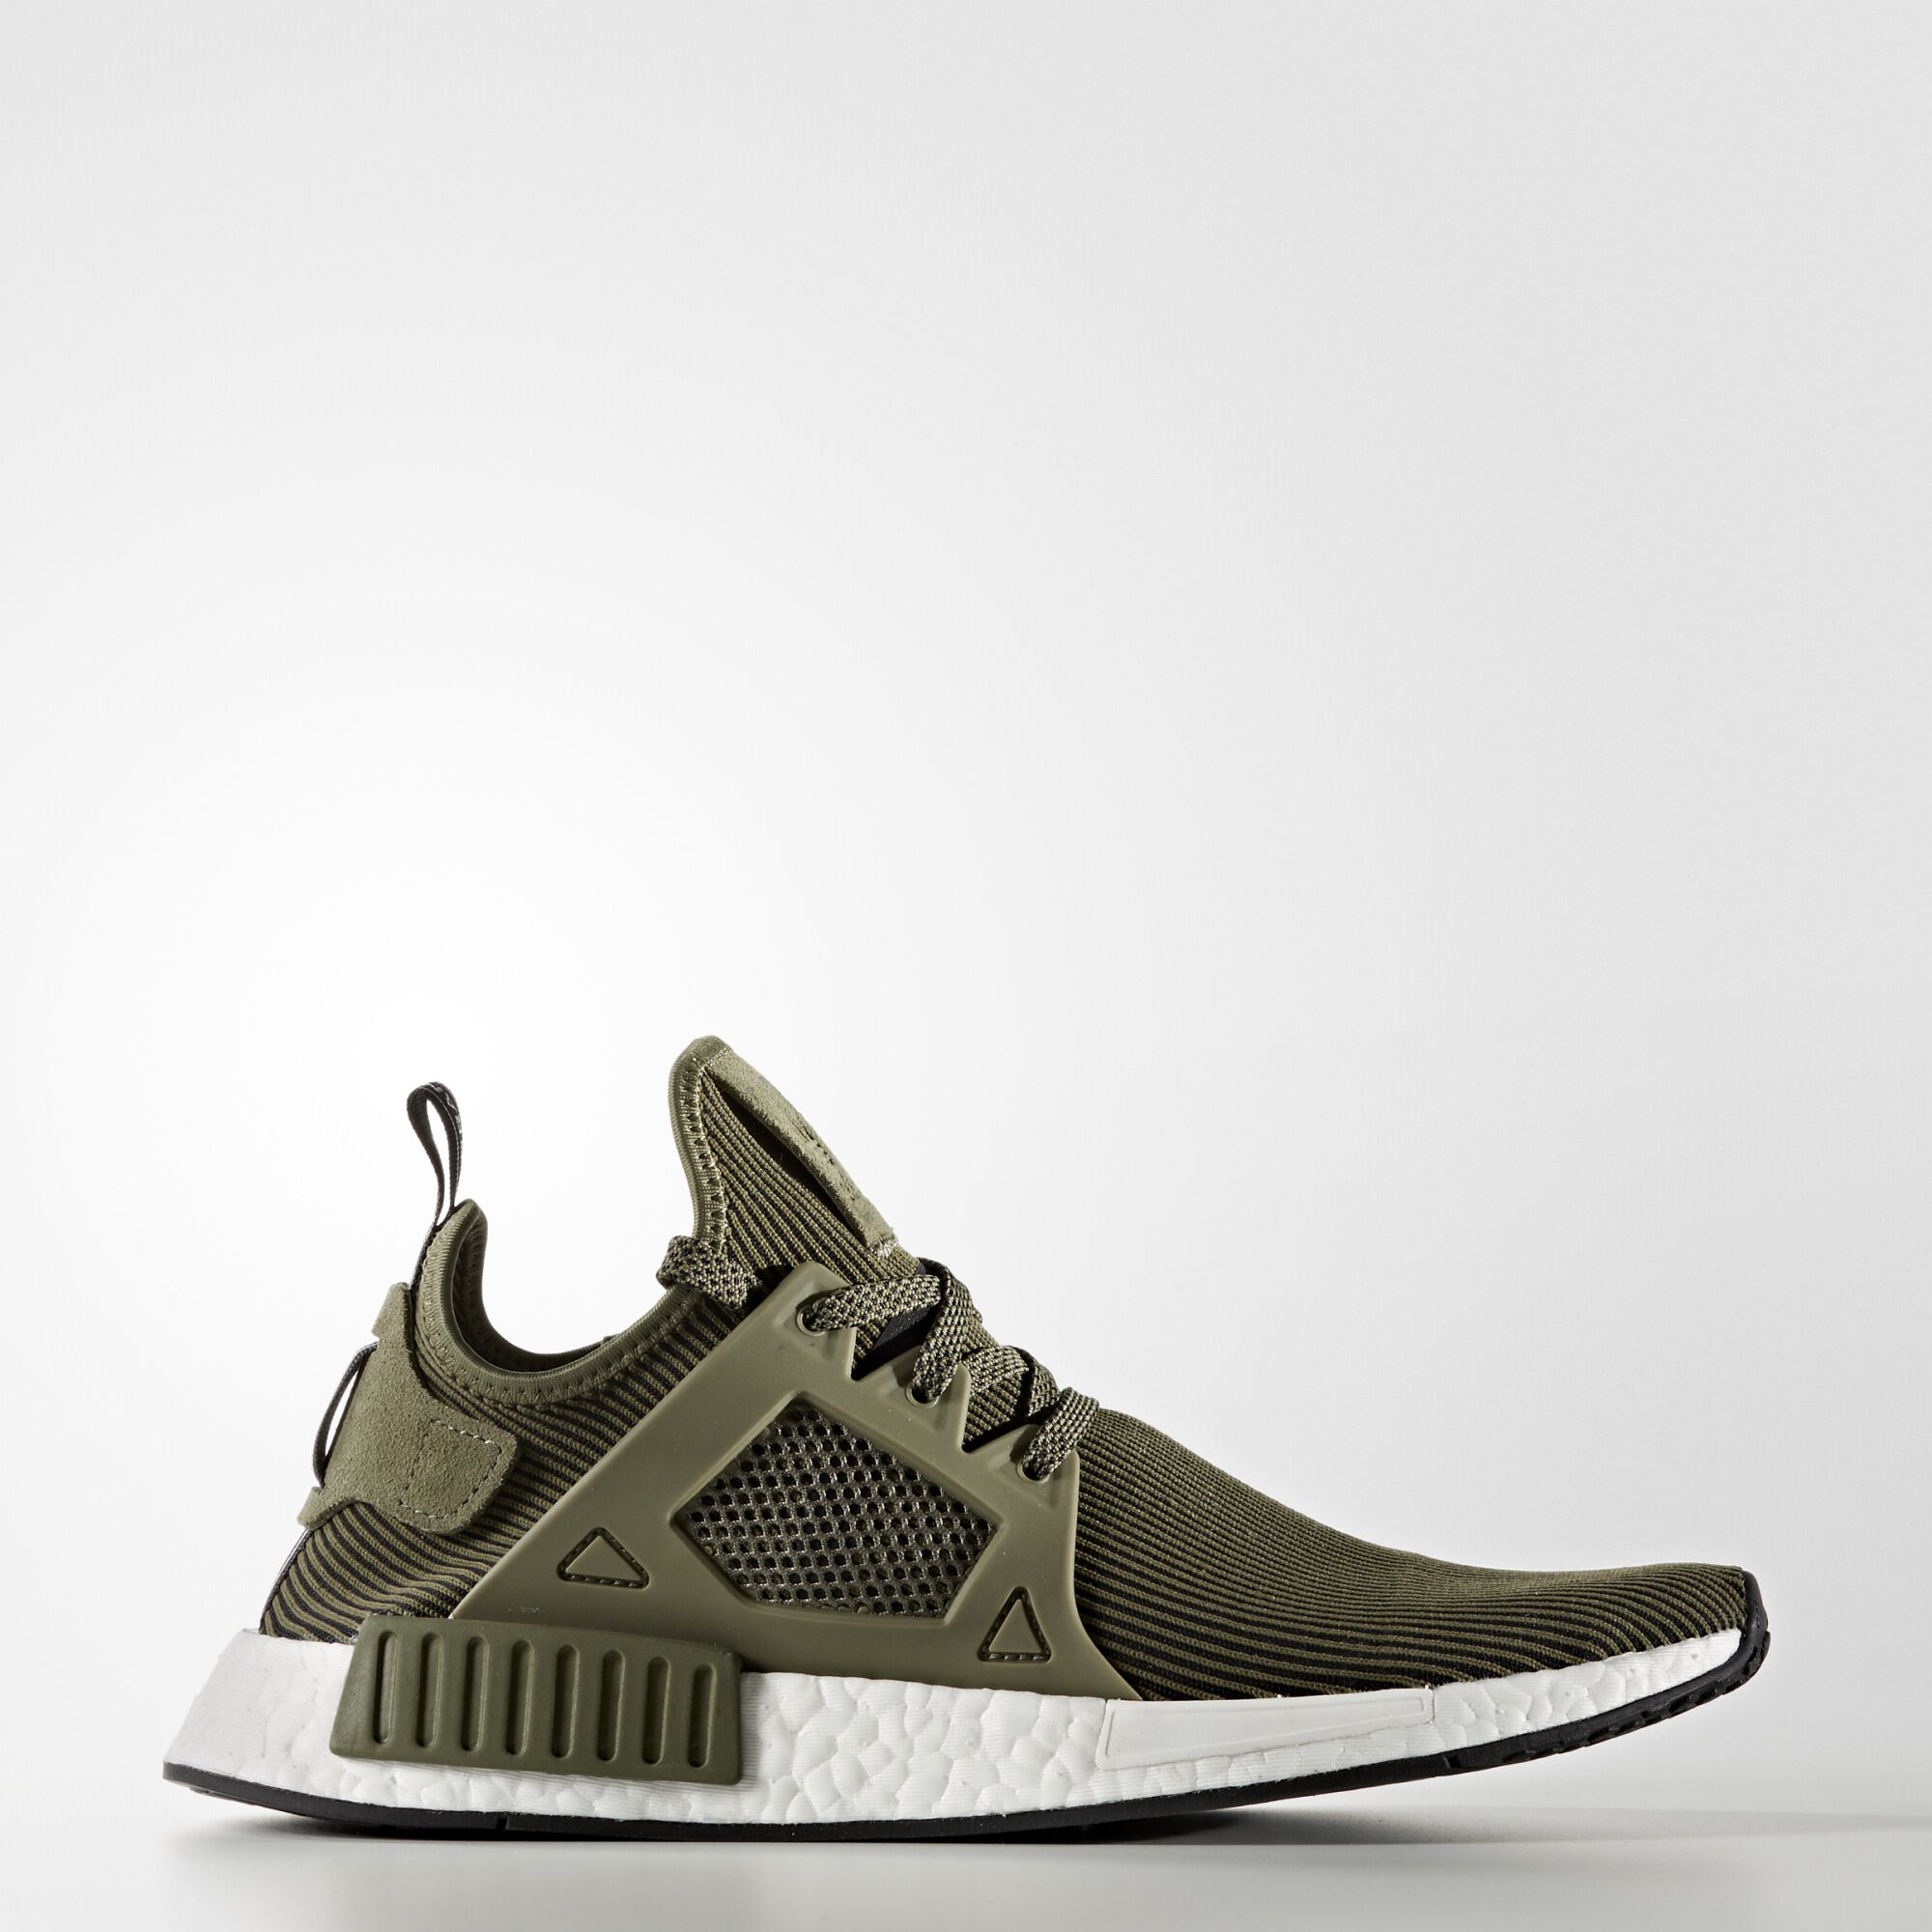 bbjupc adidas NMD Shoes - R1, R2, XR1 NMDs and More | adidas US